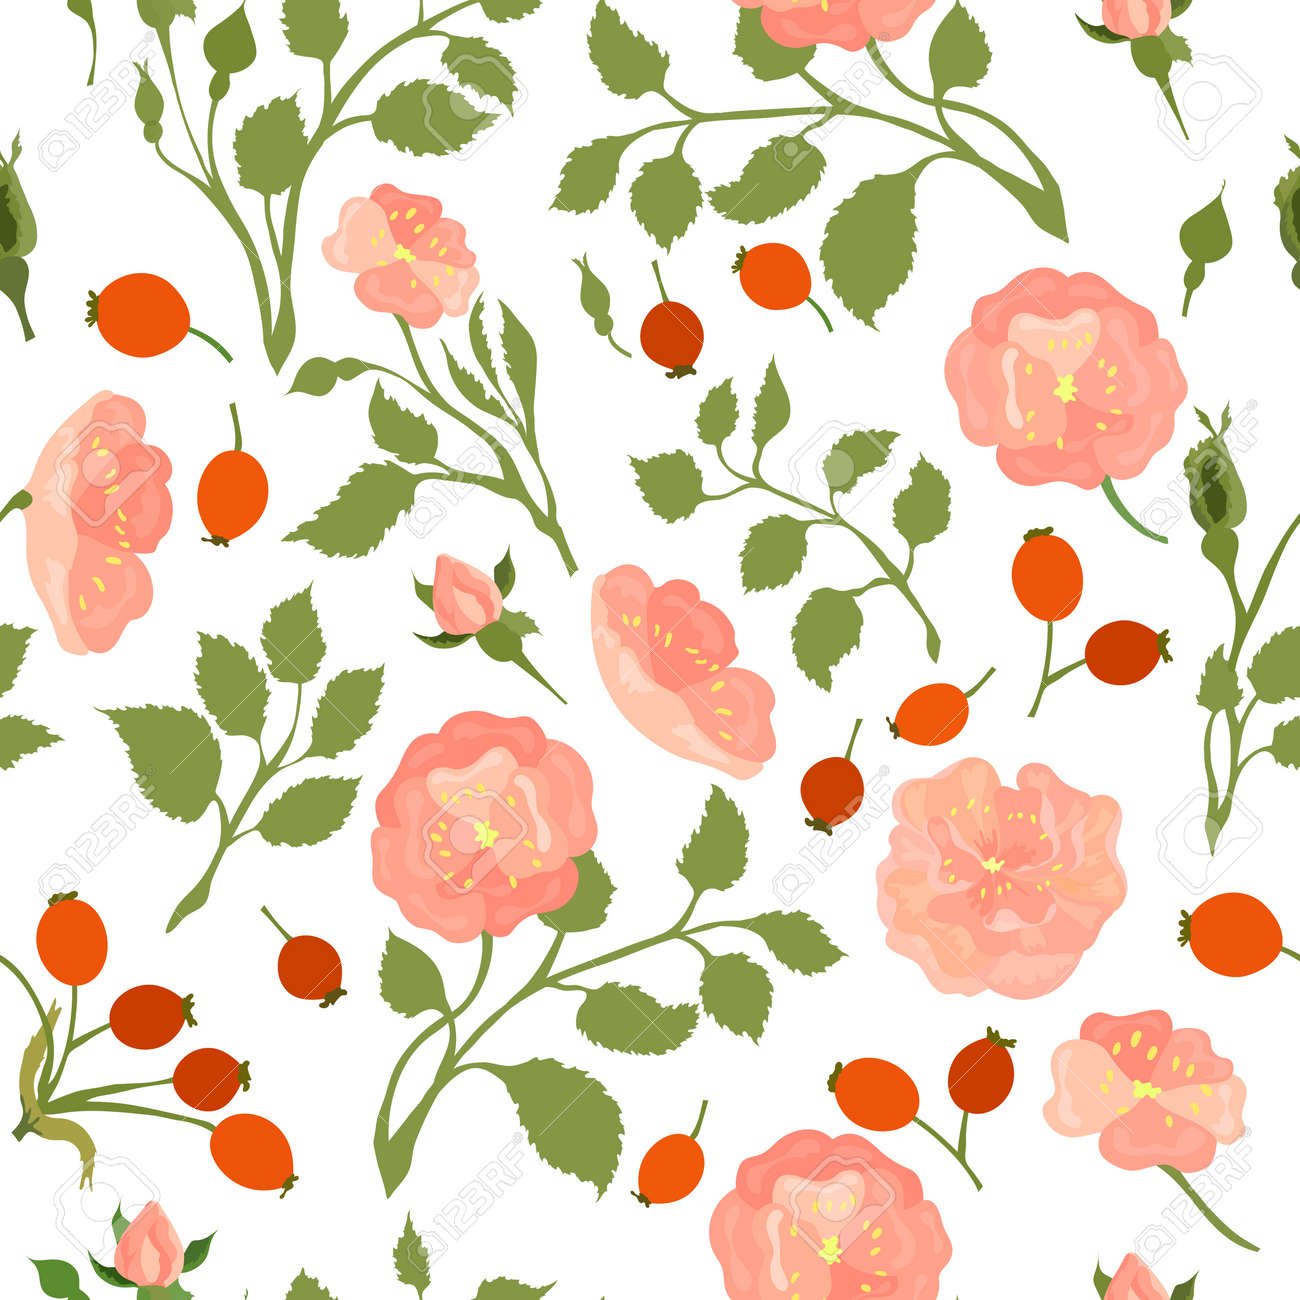 Seamless Pattern with Colored Dog-Rose. Twigs, Flower Heads, Fruits and Leaves Placed Chaotically on White Backdrop. Ideal for Magazine, Recipe book, Poster, Card, Menu cover etc. - 166149141